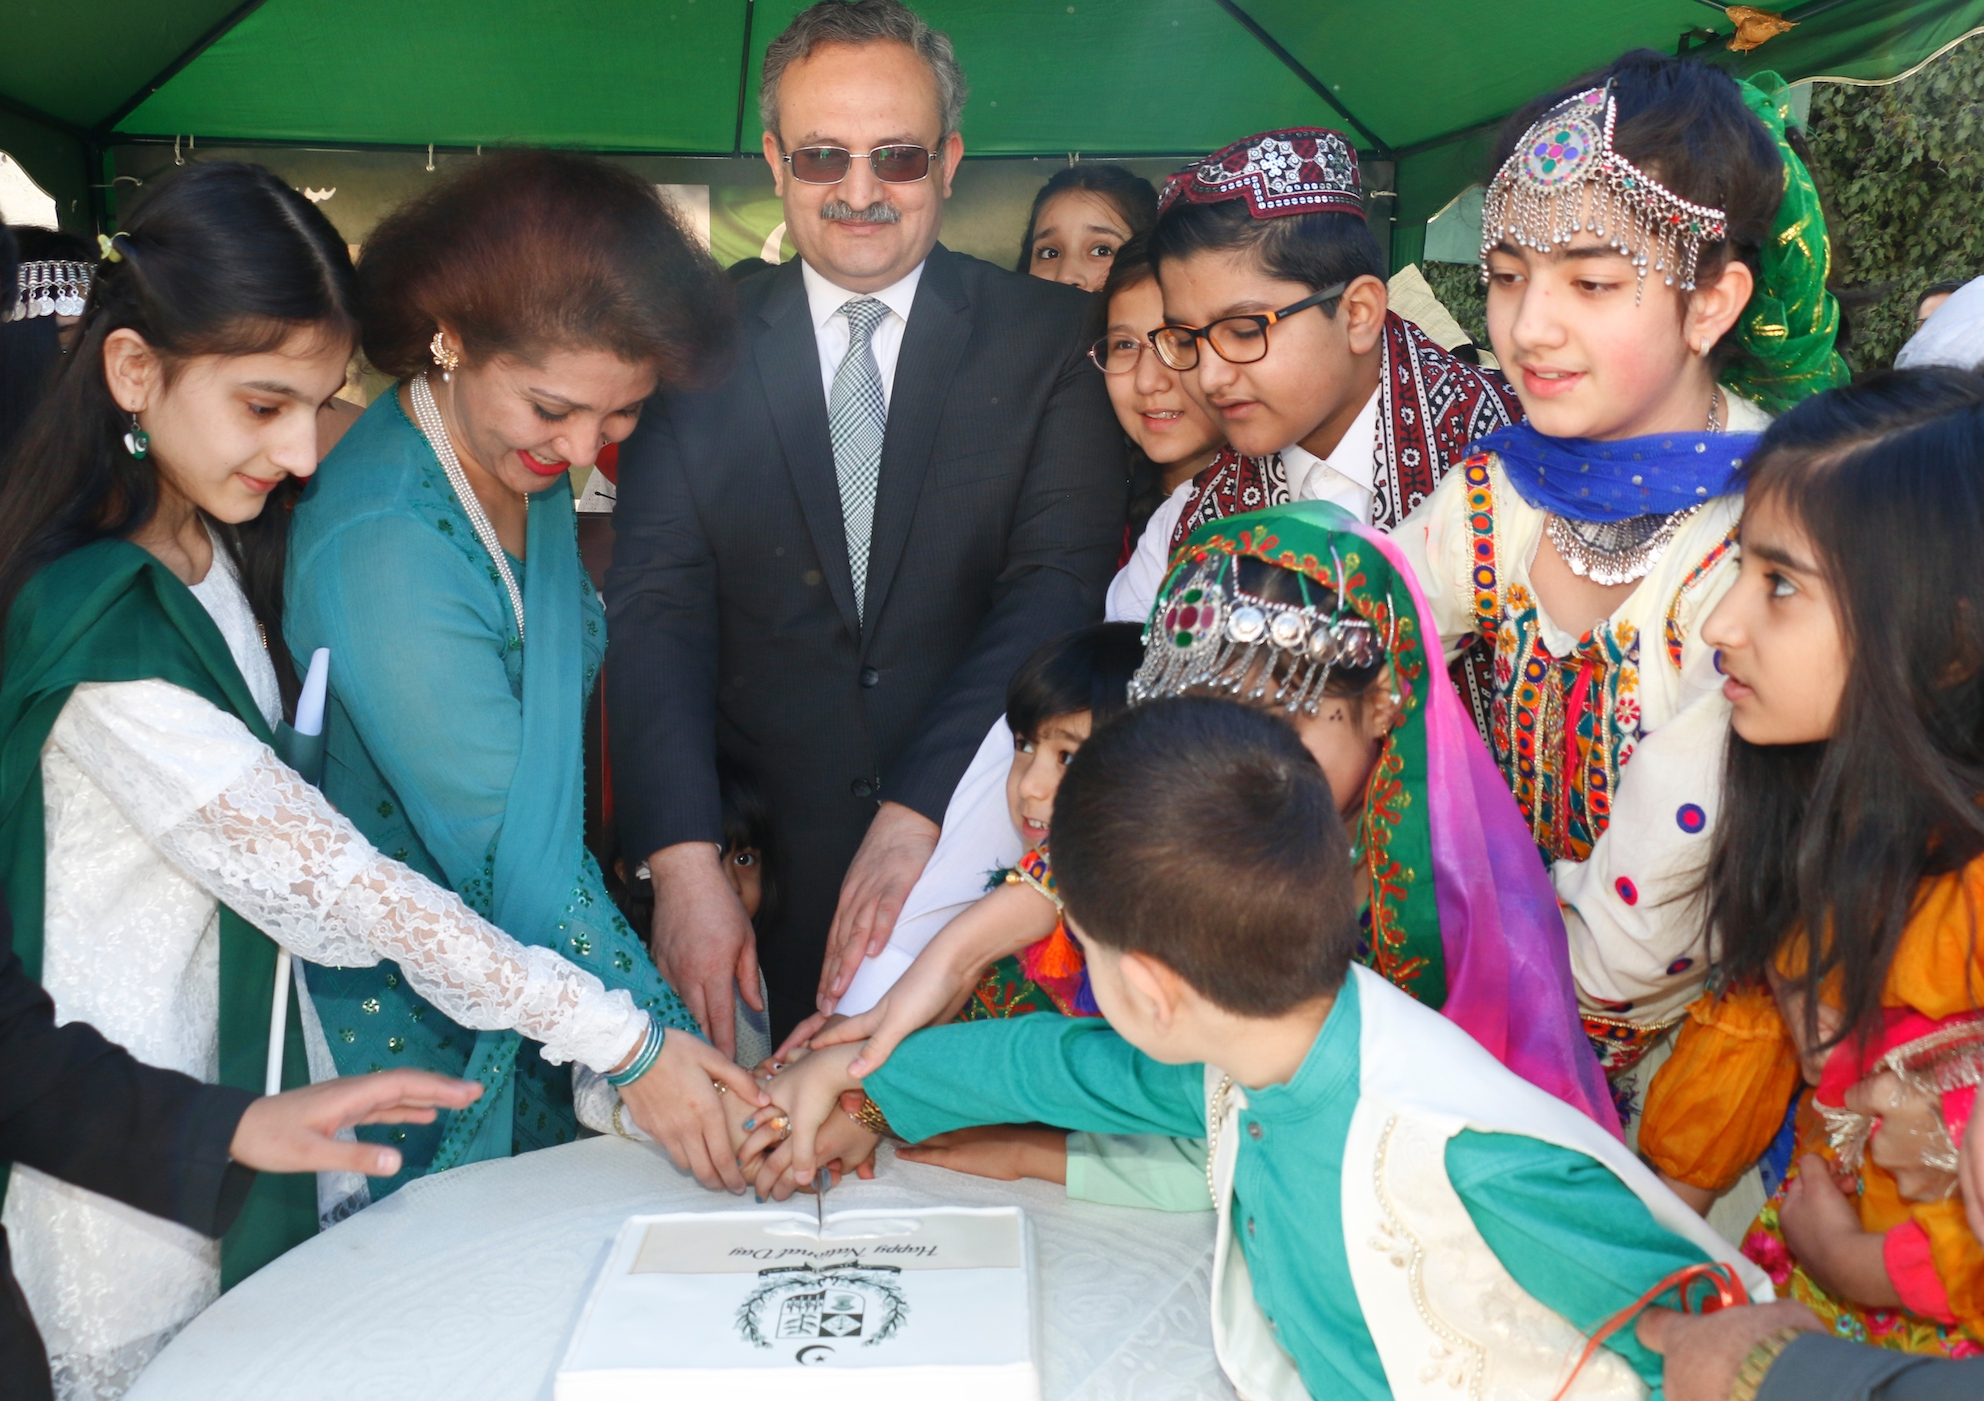 Flanked by Pakistani children, Ambassador Syrus Sajjad Qazi and his spouse cutting cake to mark Pakistan Day 23 March 2019